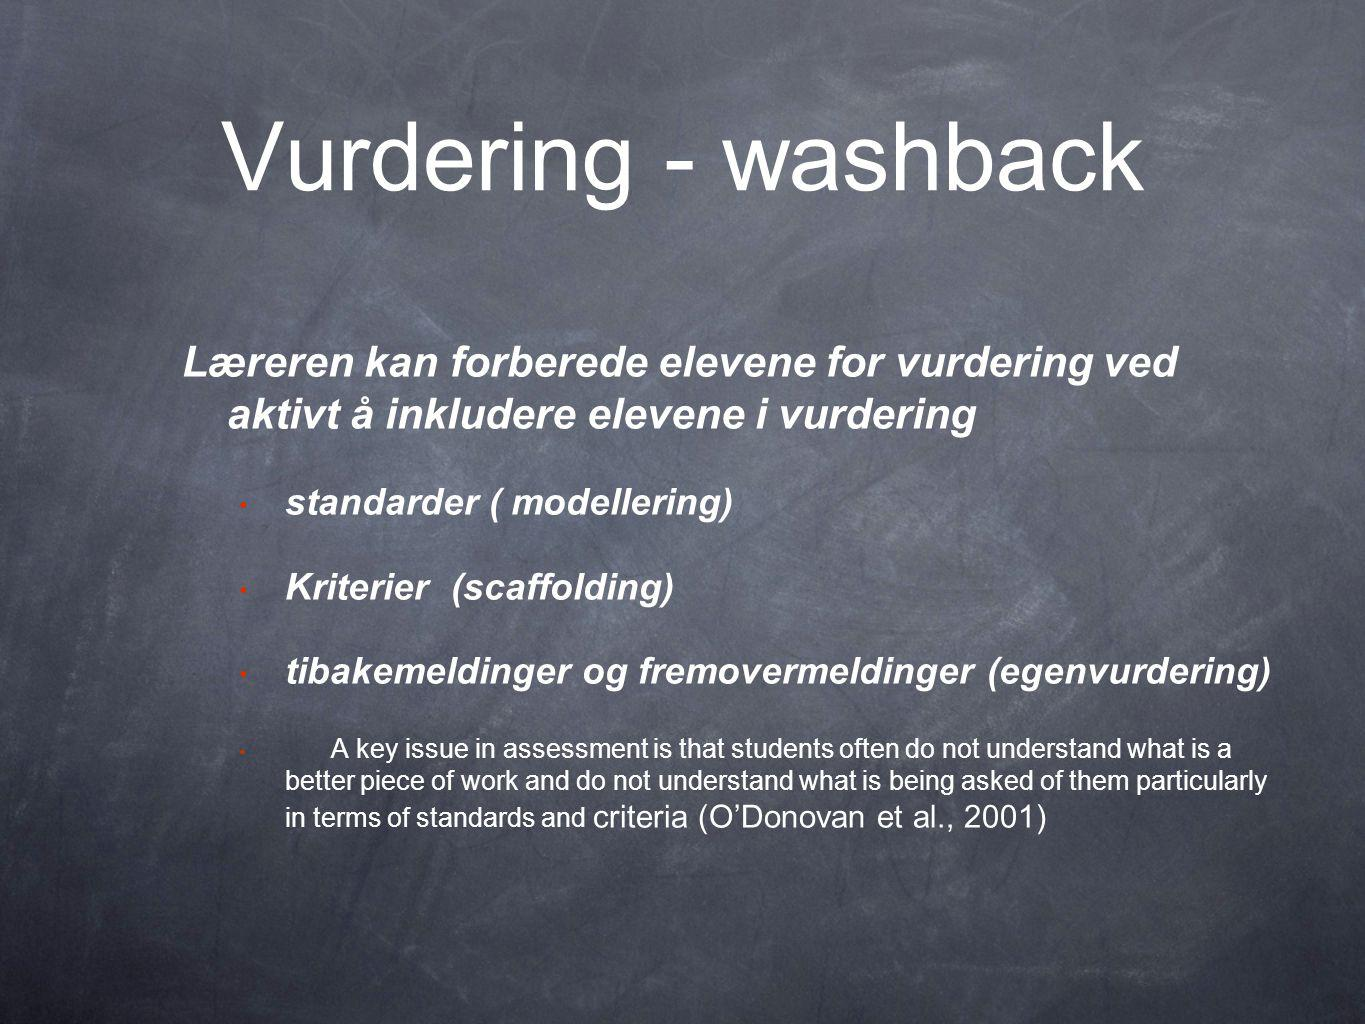 Vurdering - washback Læreren kan forberede elevene for vurdering ved aktivt å inkludere elevene i vurdering • standarder ( modellering) • Kriterier (scaffolding) • tibakemeldinger og fremovermeldinger (egenvurdering) • A key issue in assessment is that students often do not understand what is a better piece of work and do not understand what is being asked of them particularly in terms of standards and criteria (O'Donovan et al., 2001)